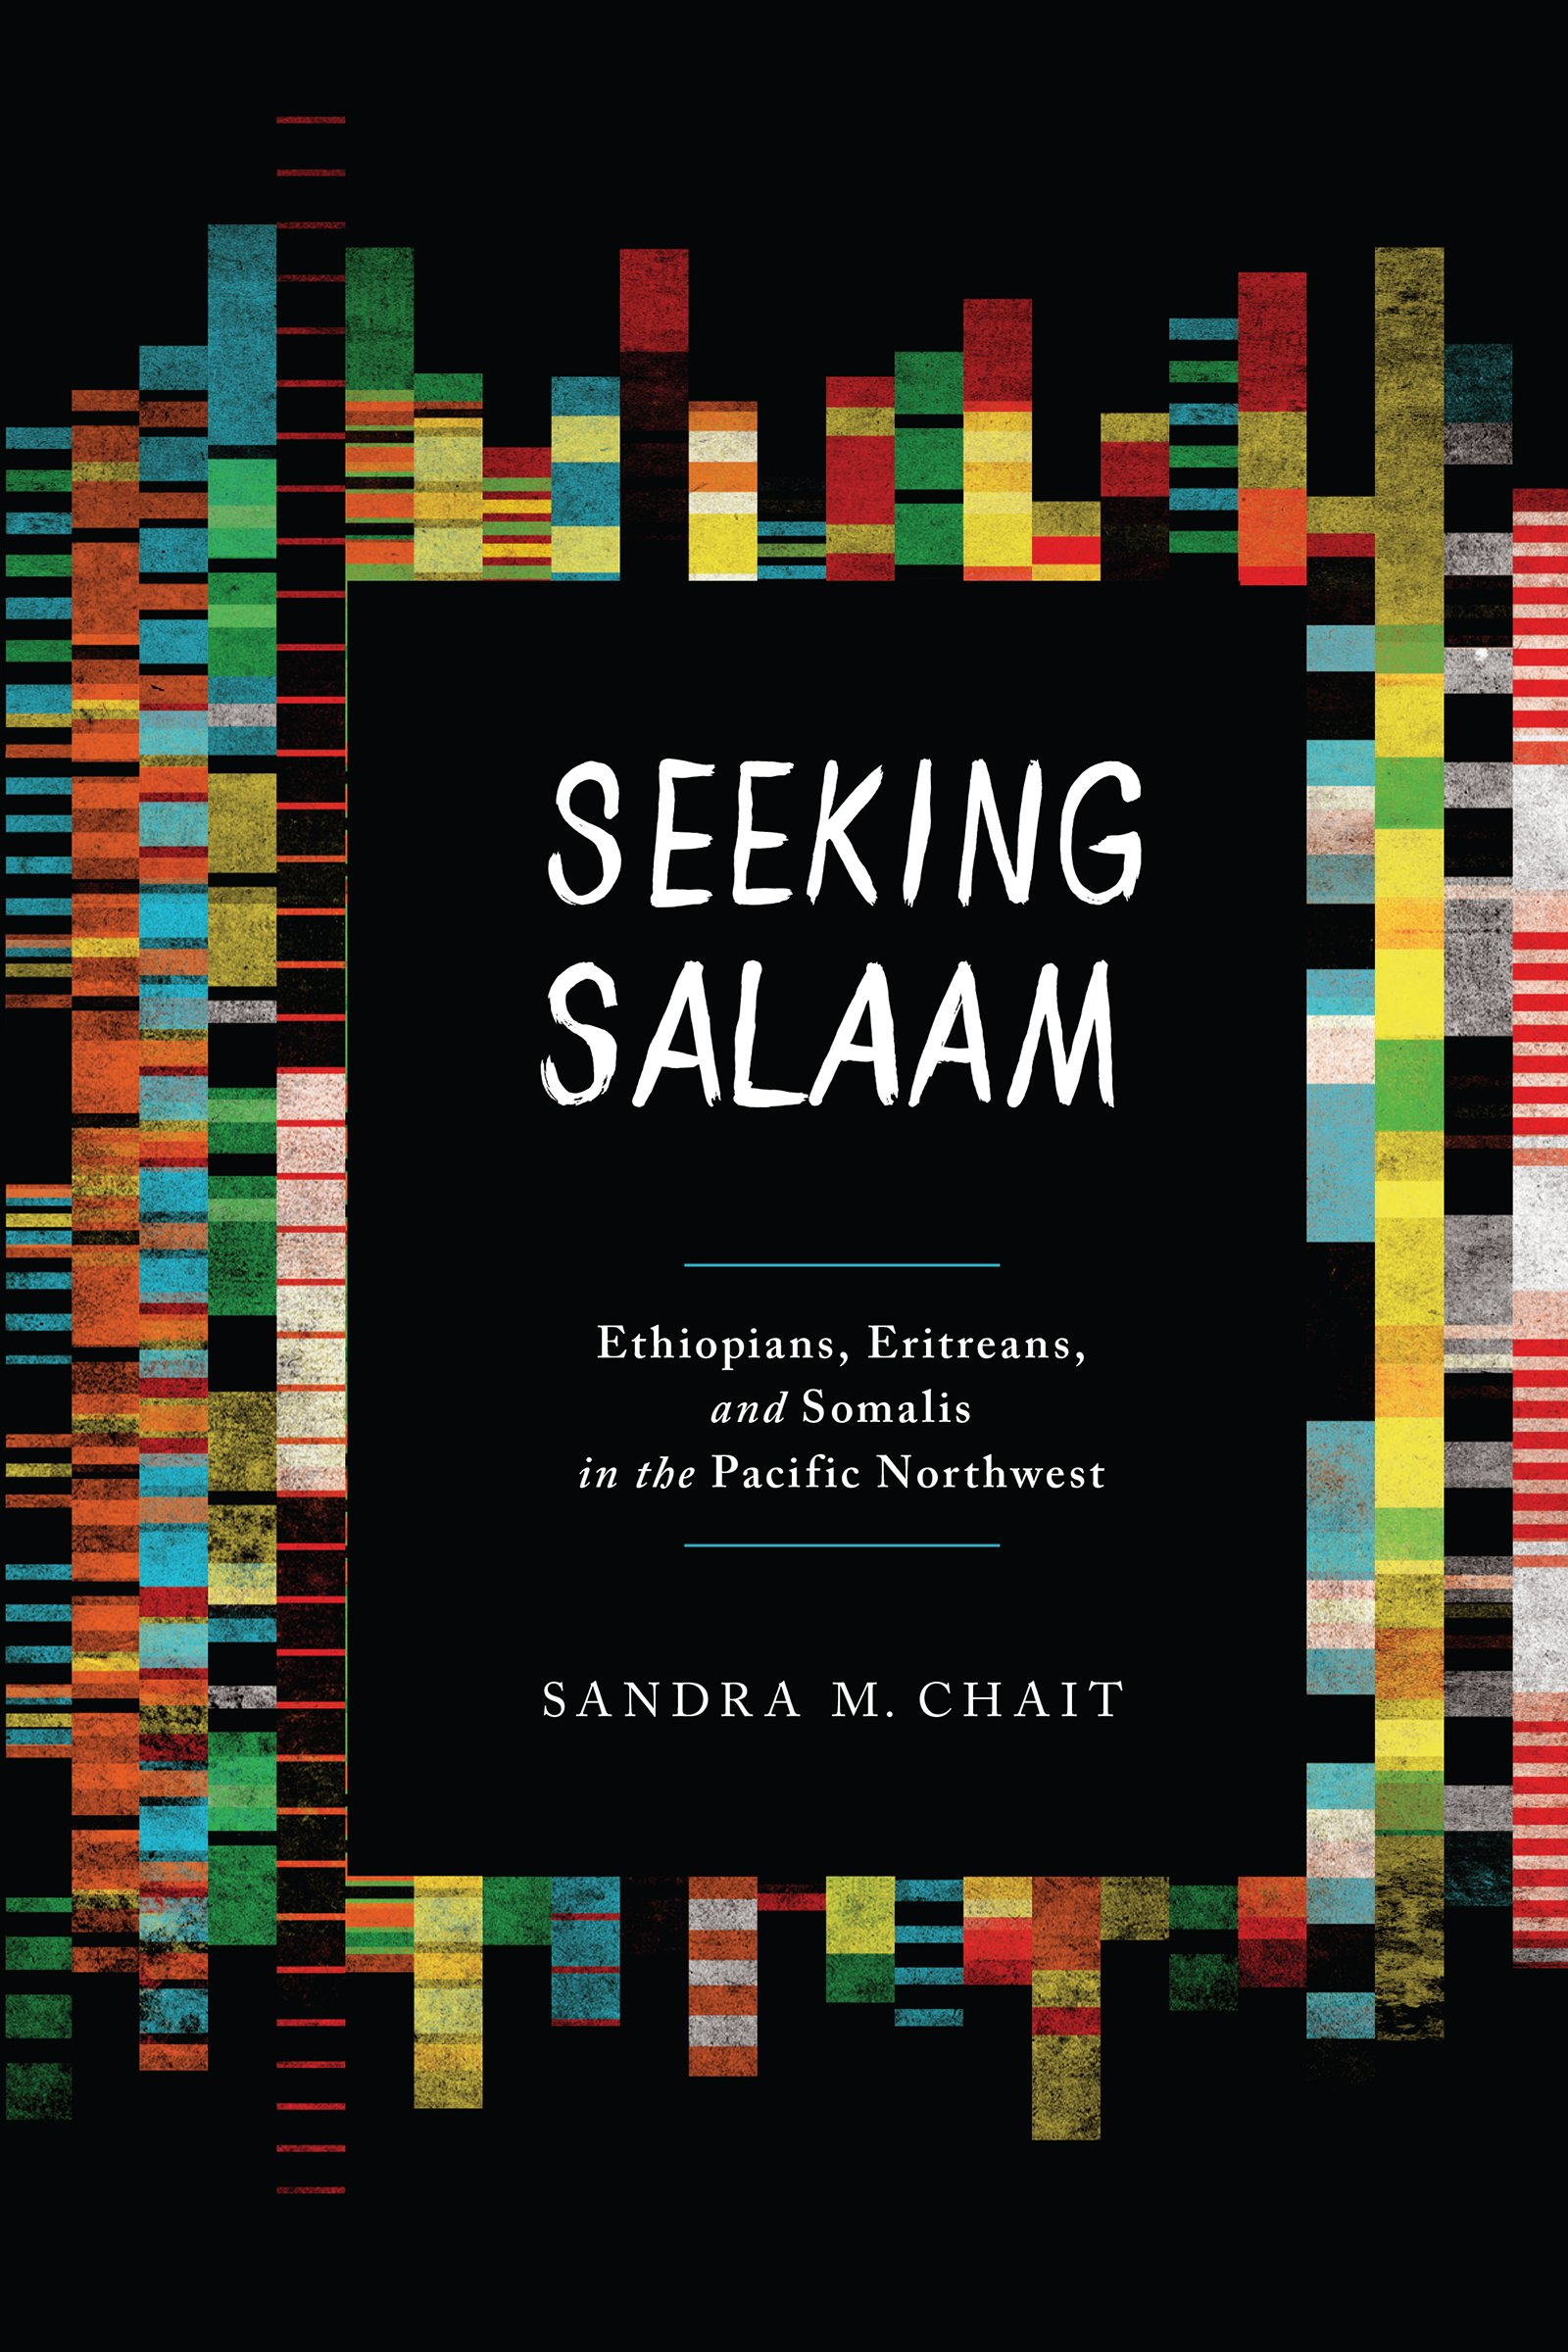 Seeking Salaam: Ethiopians, Eritreans, and Somalis in the Pacific Northwest (Samuel and Althea Stroum Books)